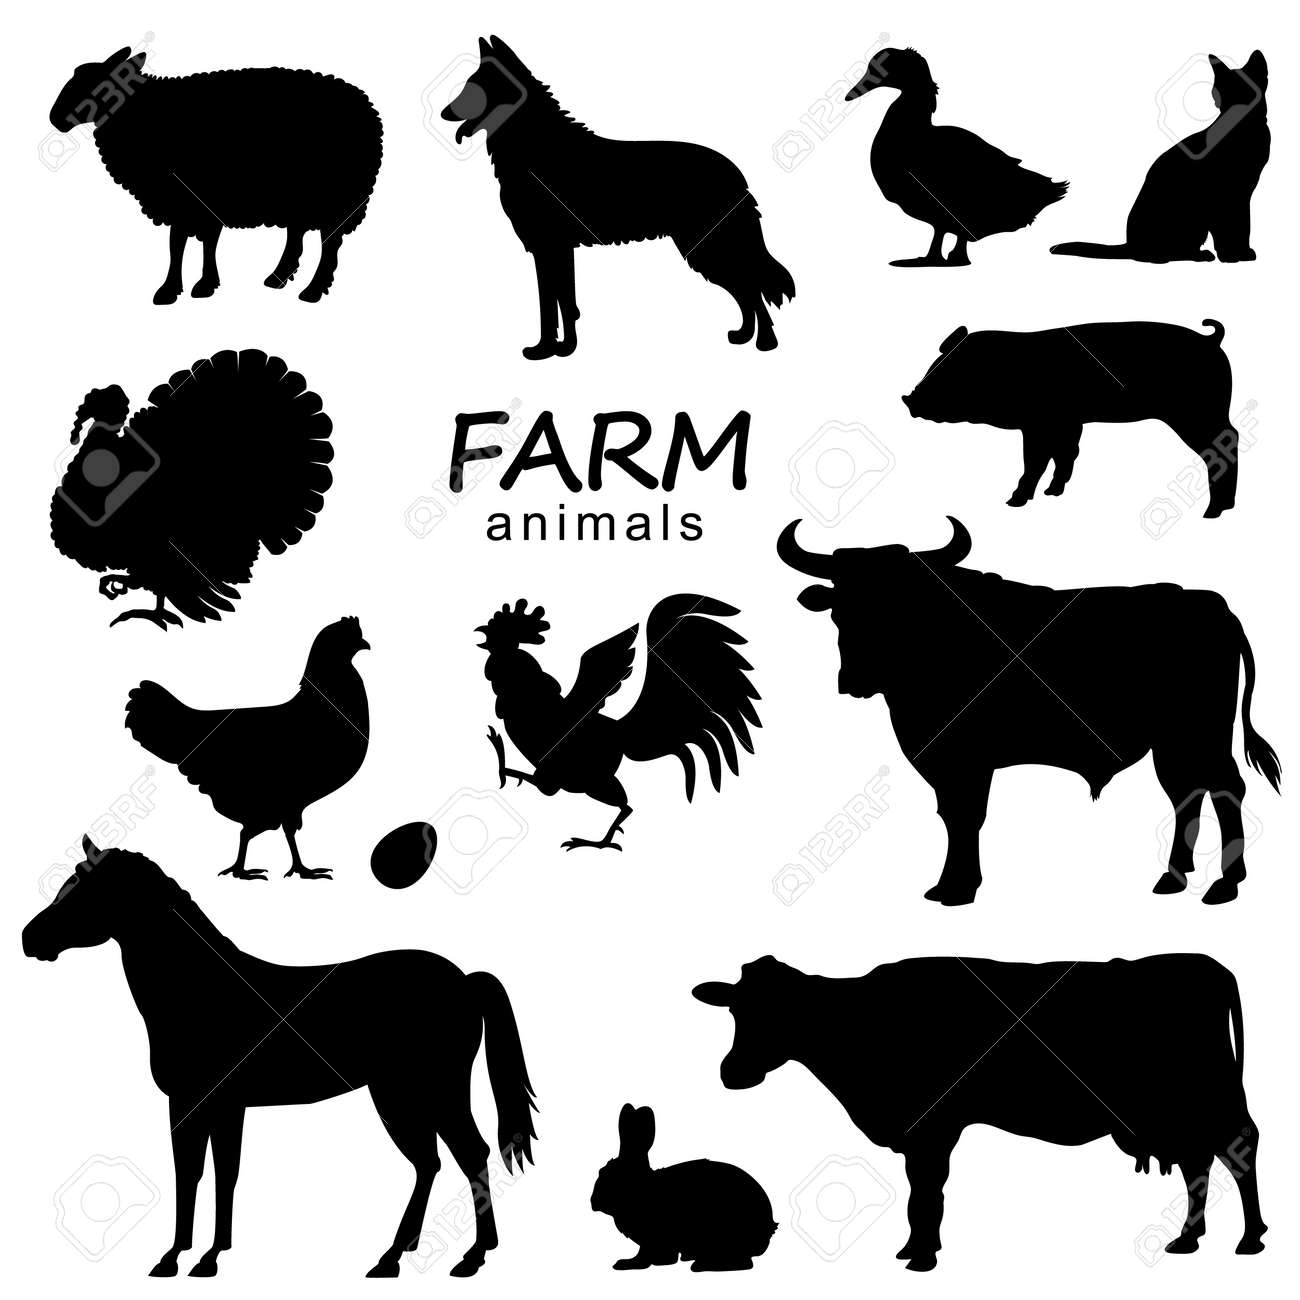 Farm animals set vector black silhouette isolated on white for design - 156323581